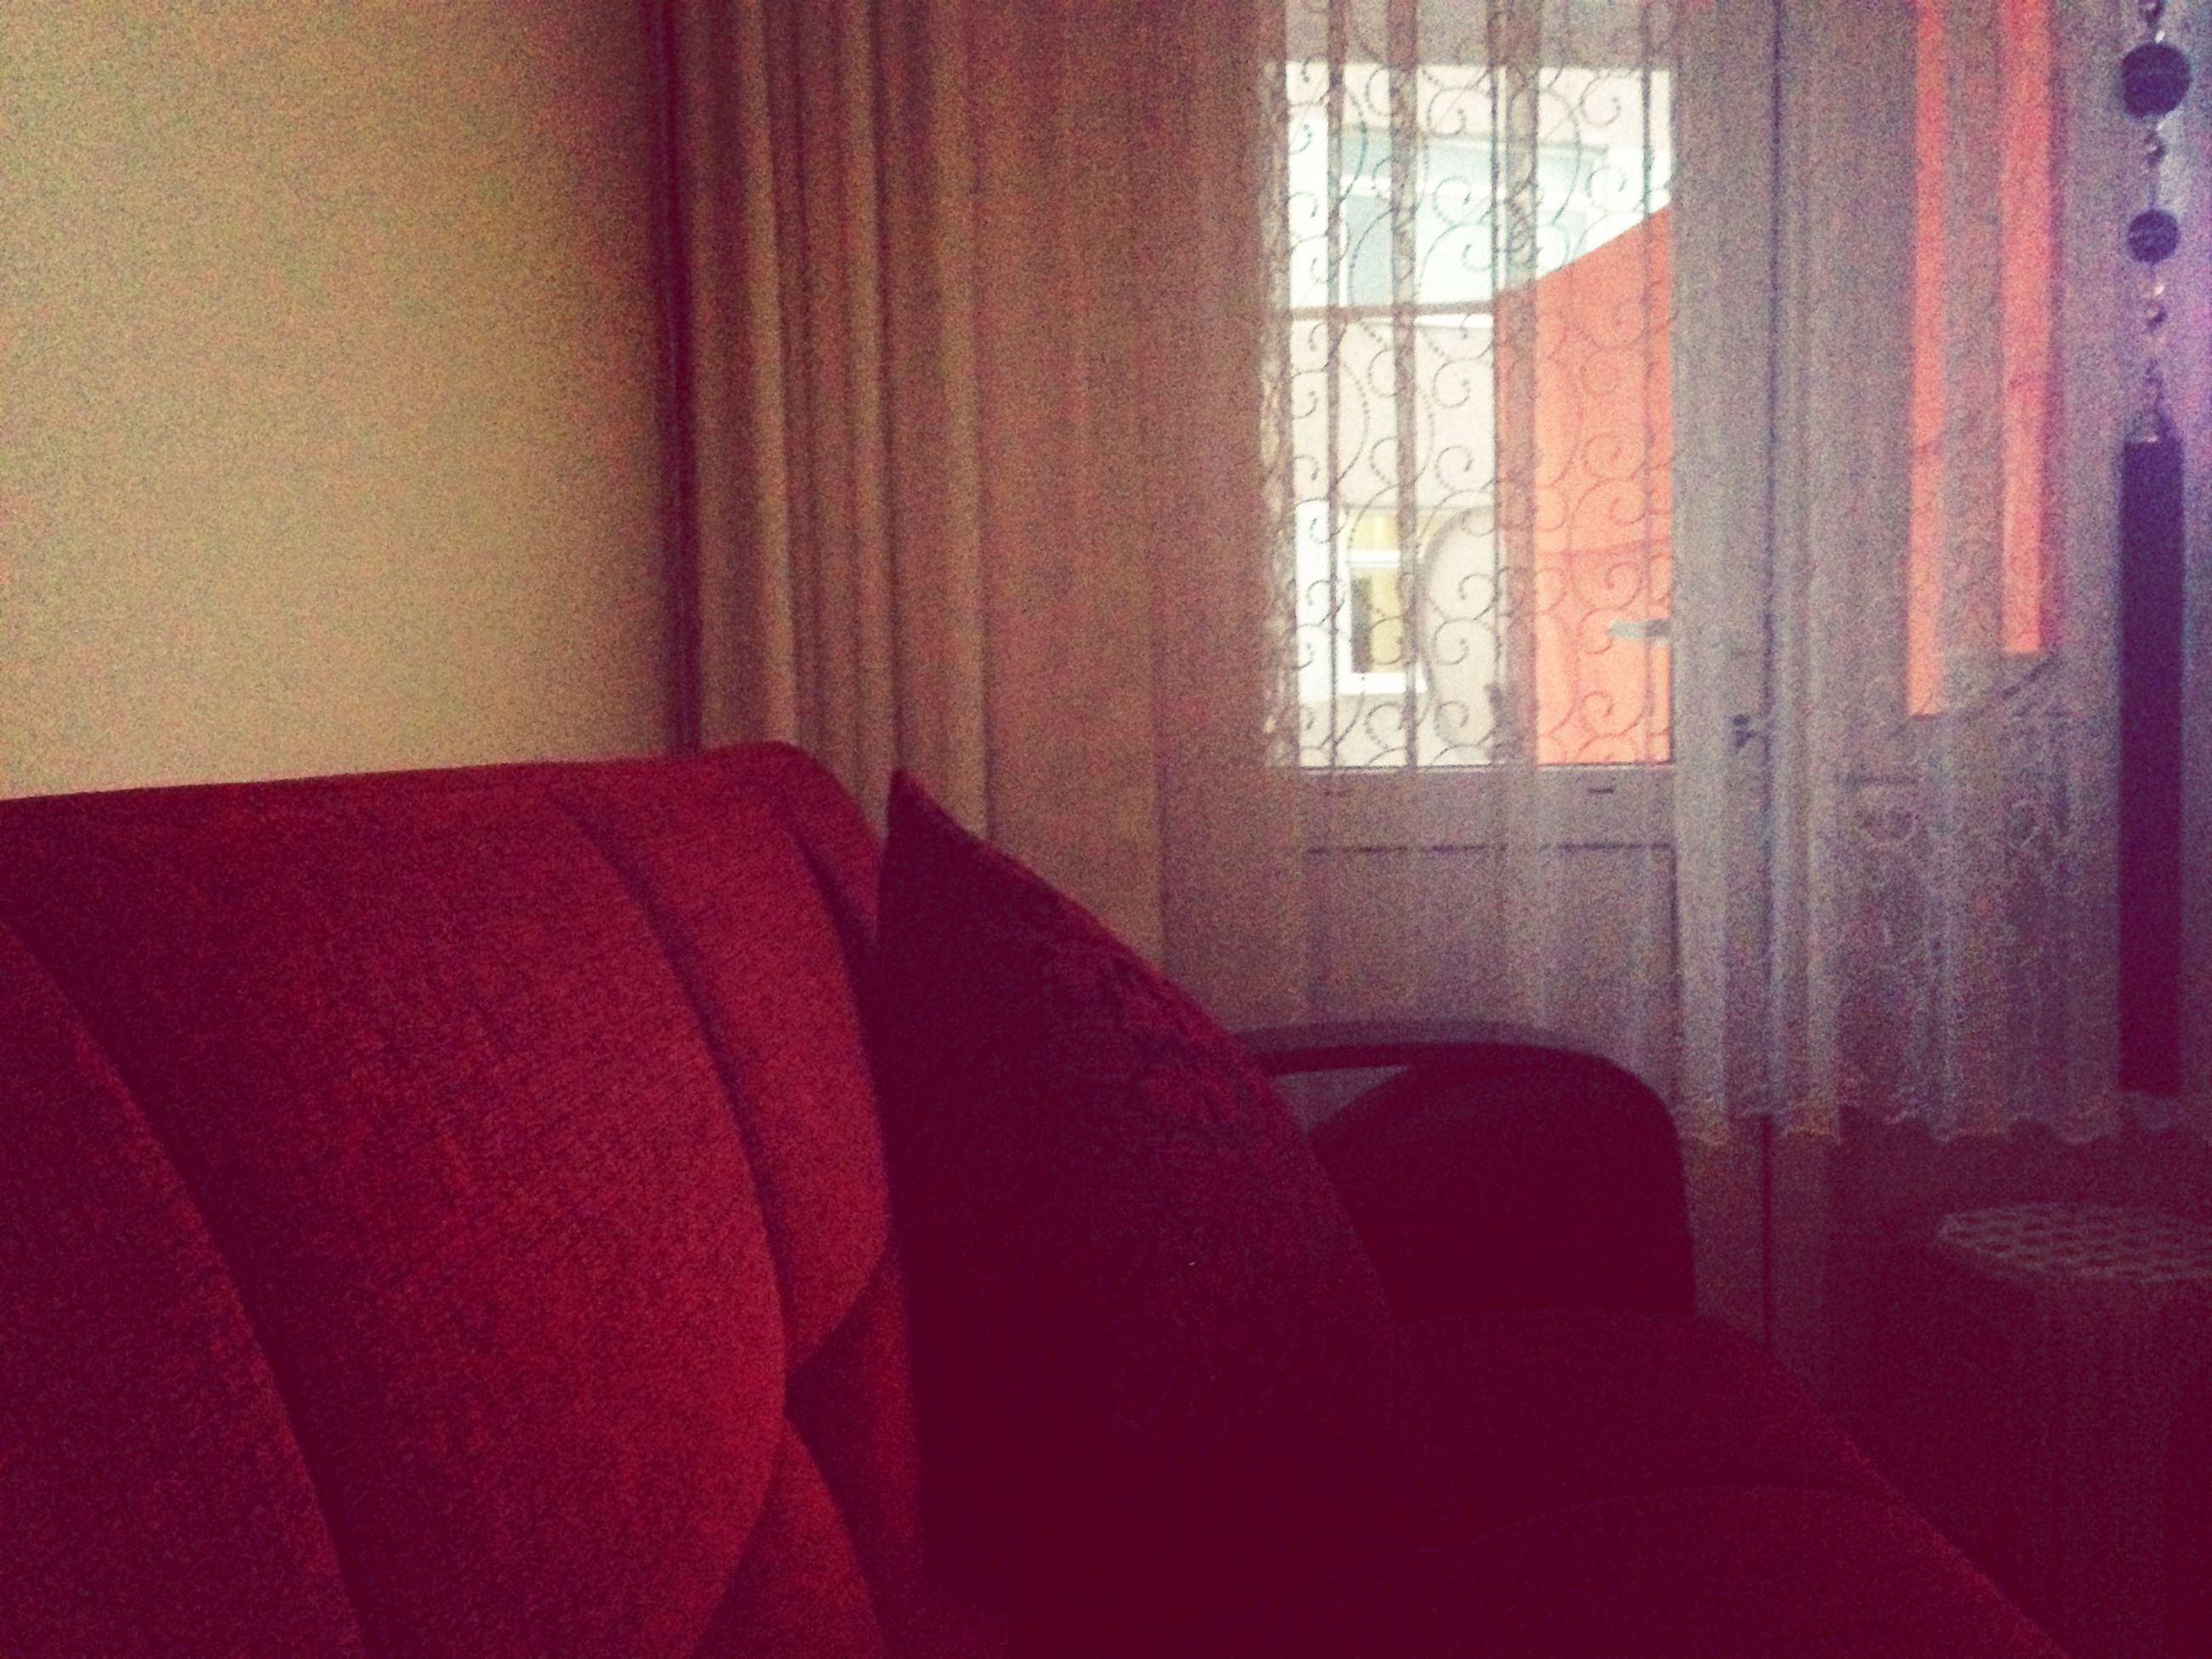 indoors, window, home interior, curtain, bed, red, bedroom, relaxation, sofa, domestic room, house, fabric, textile, sunlight, built structure, chair, comfortable, absence, architecture, day